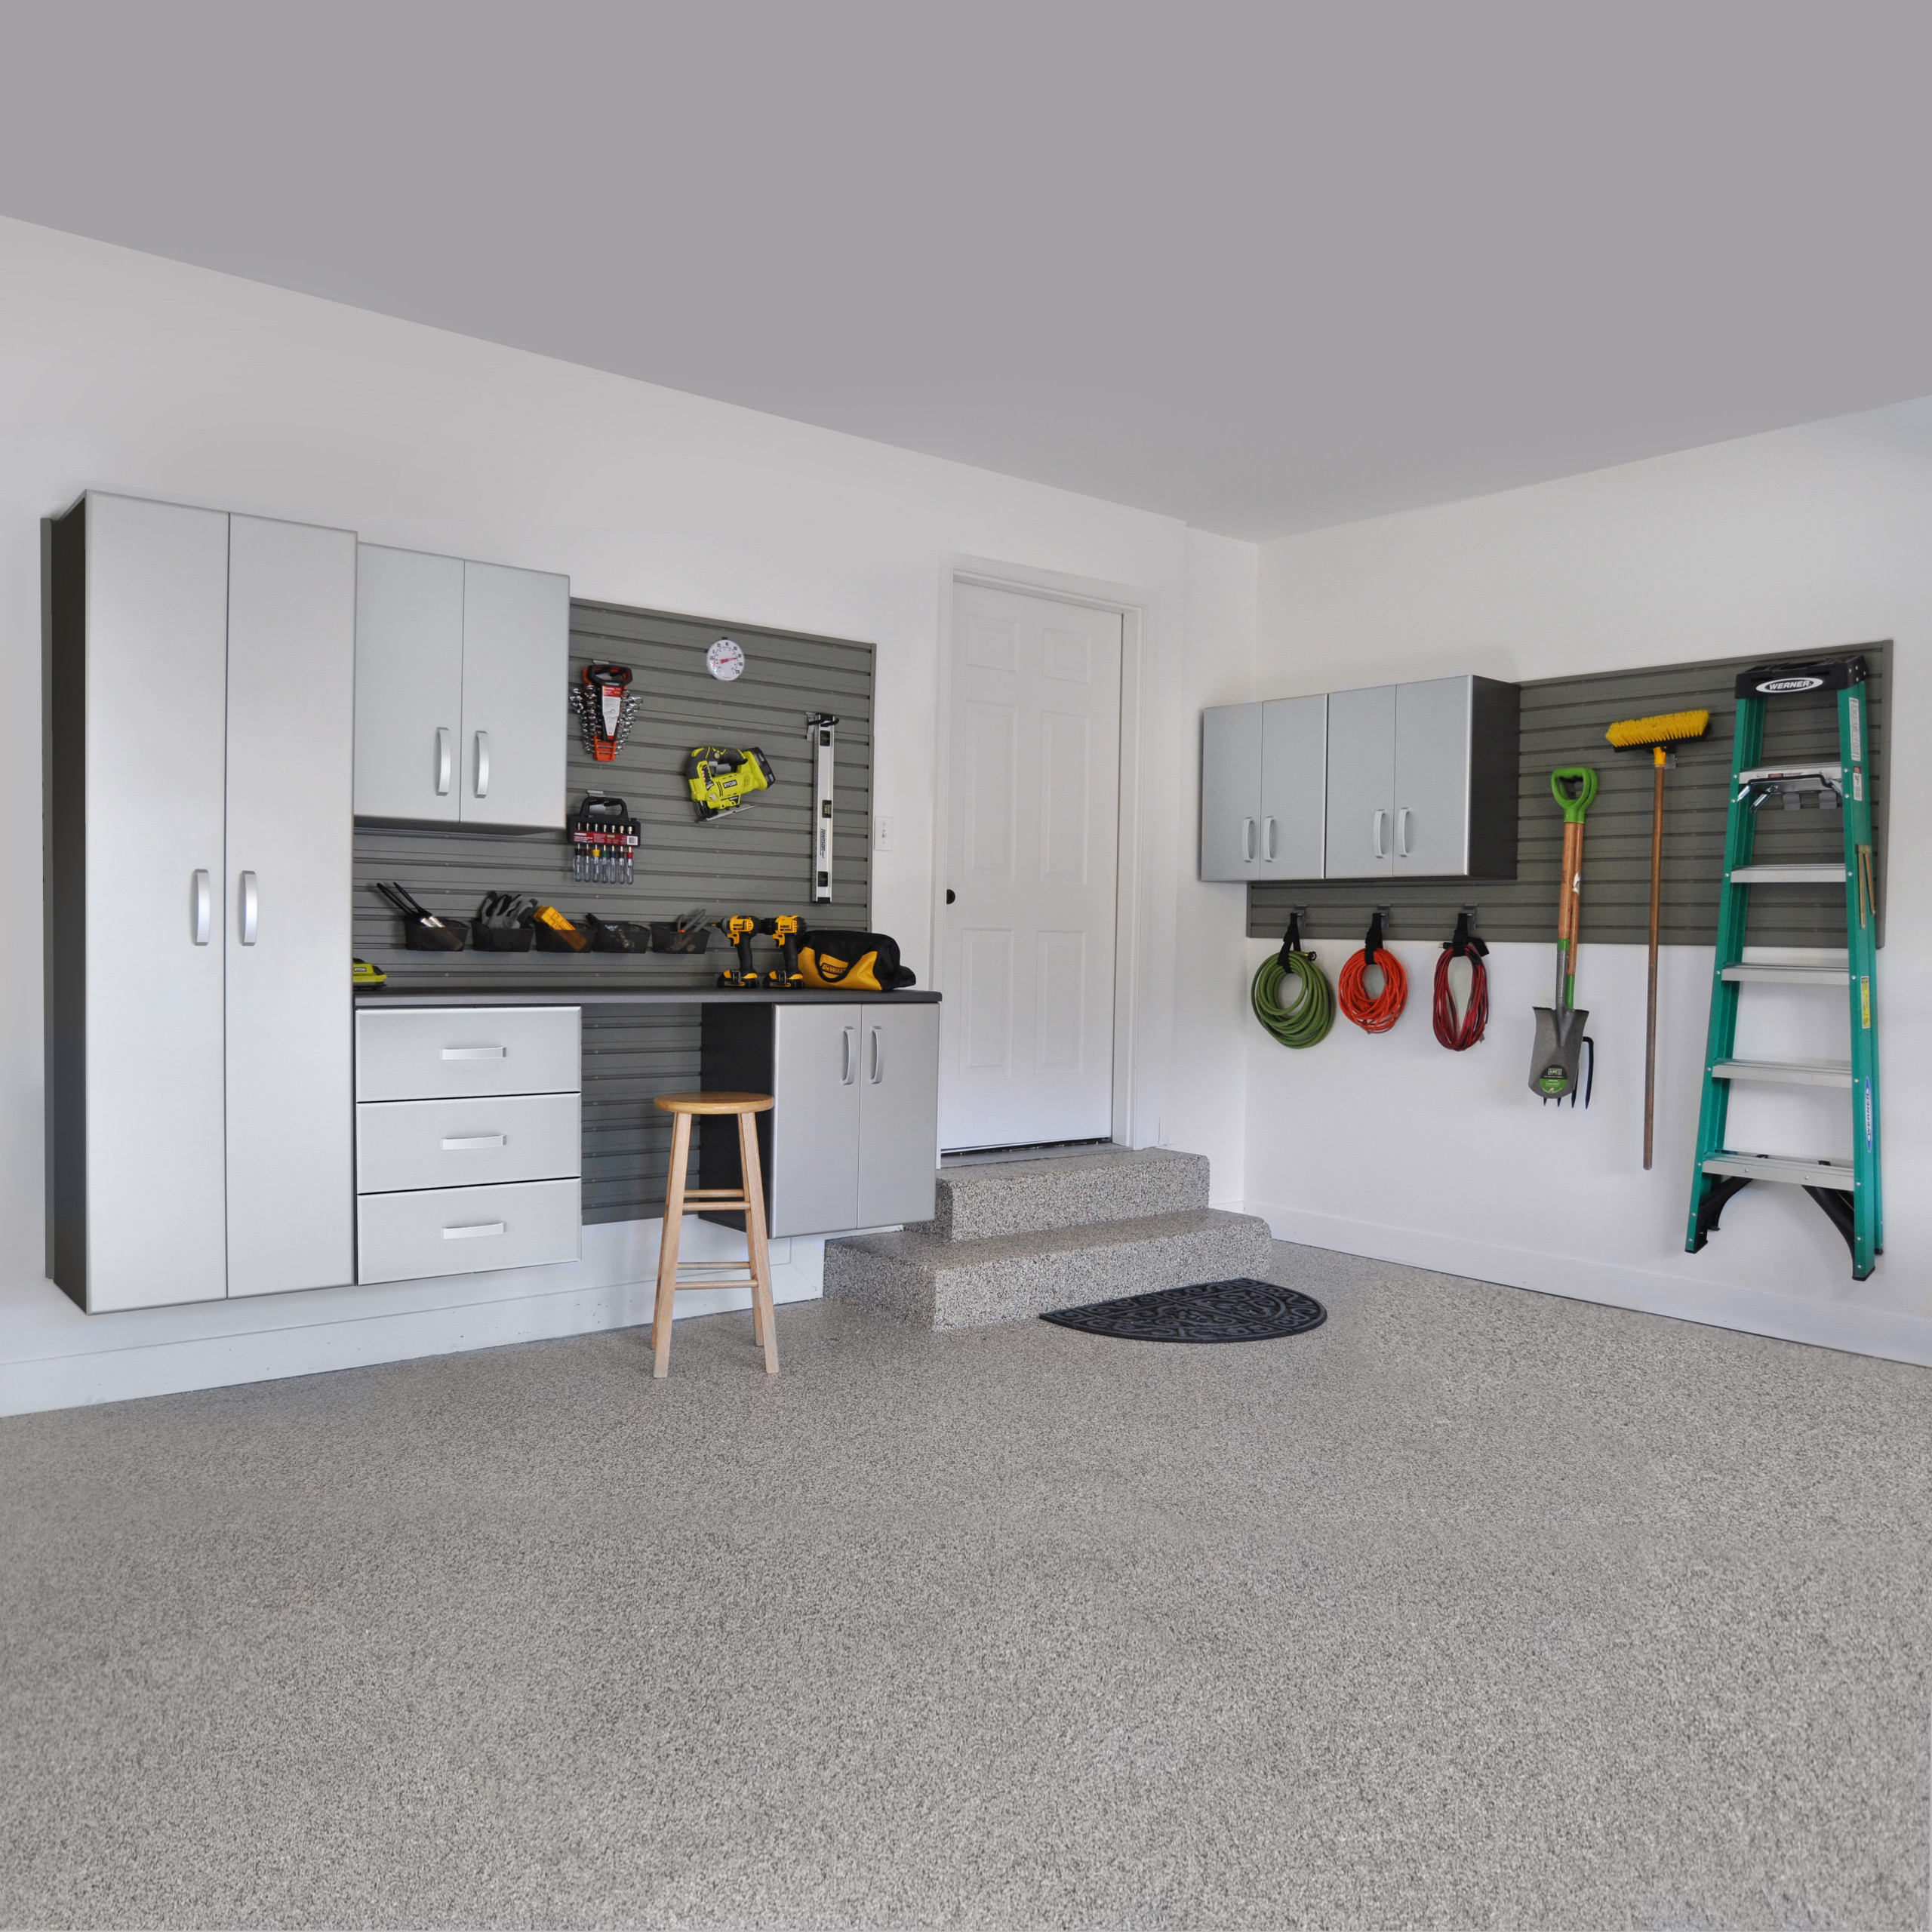 18 Beautiful Modern Garage Pictures Ideas October 2020 Houzz